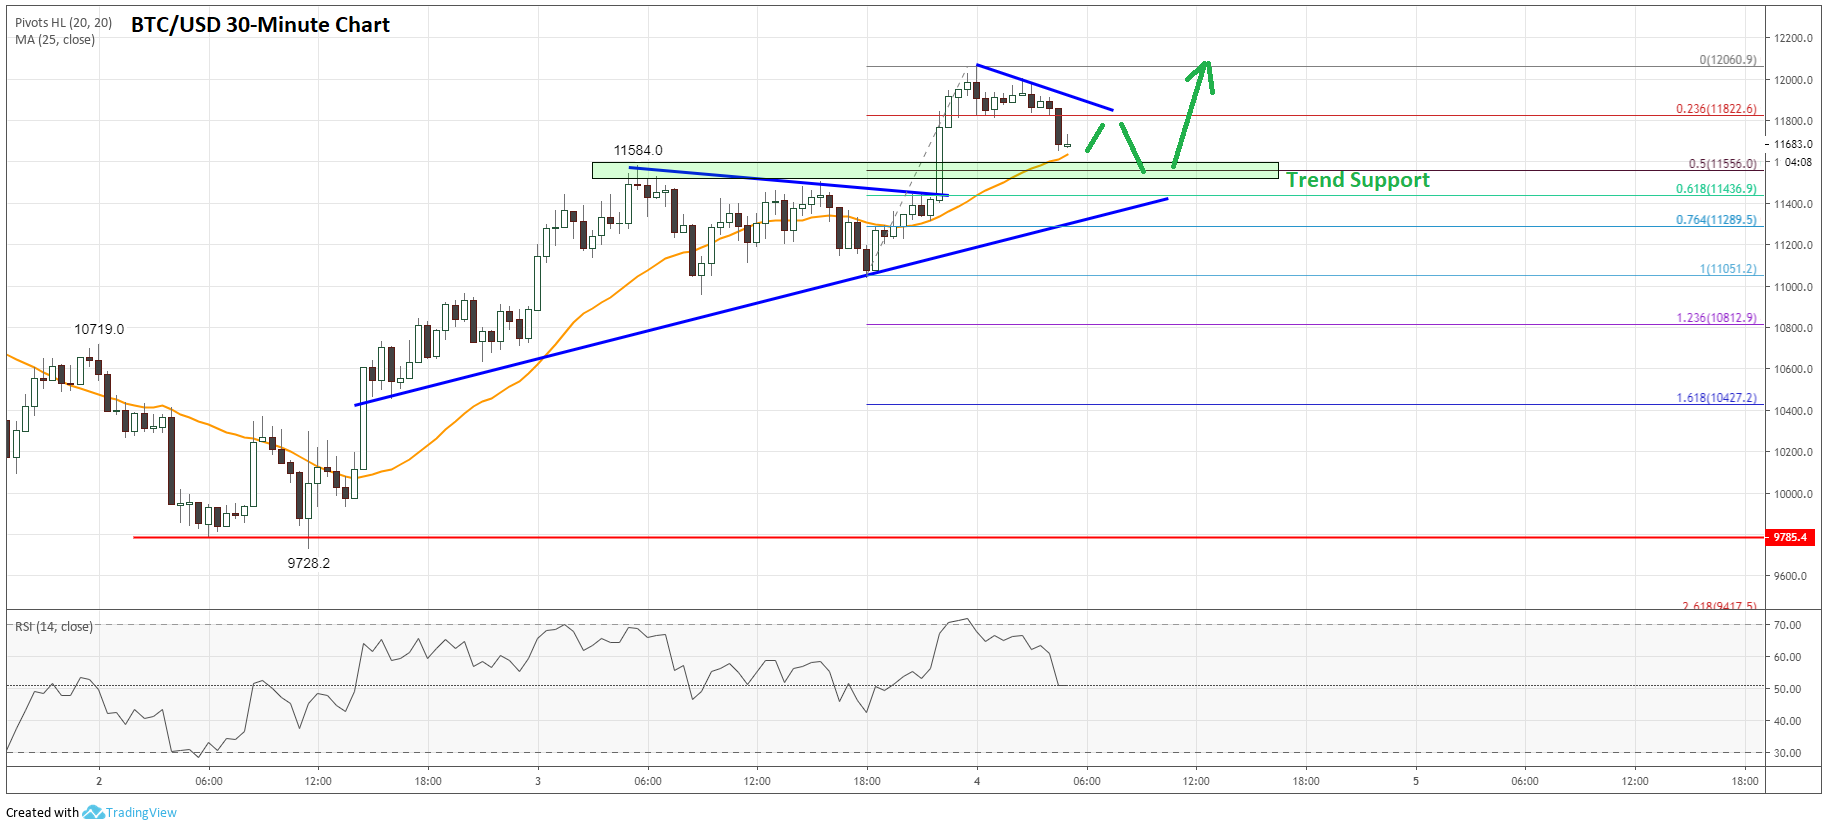 Bitcoin Price Analysis: BTC/USD Could Continue Its Uptrend To $13K